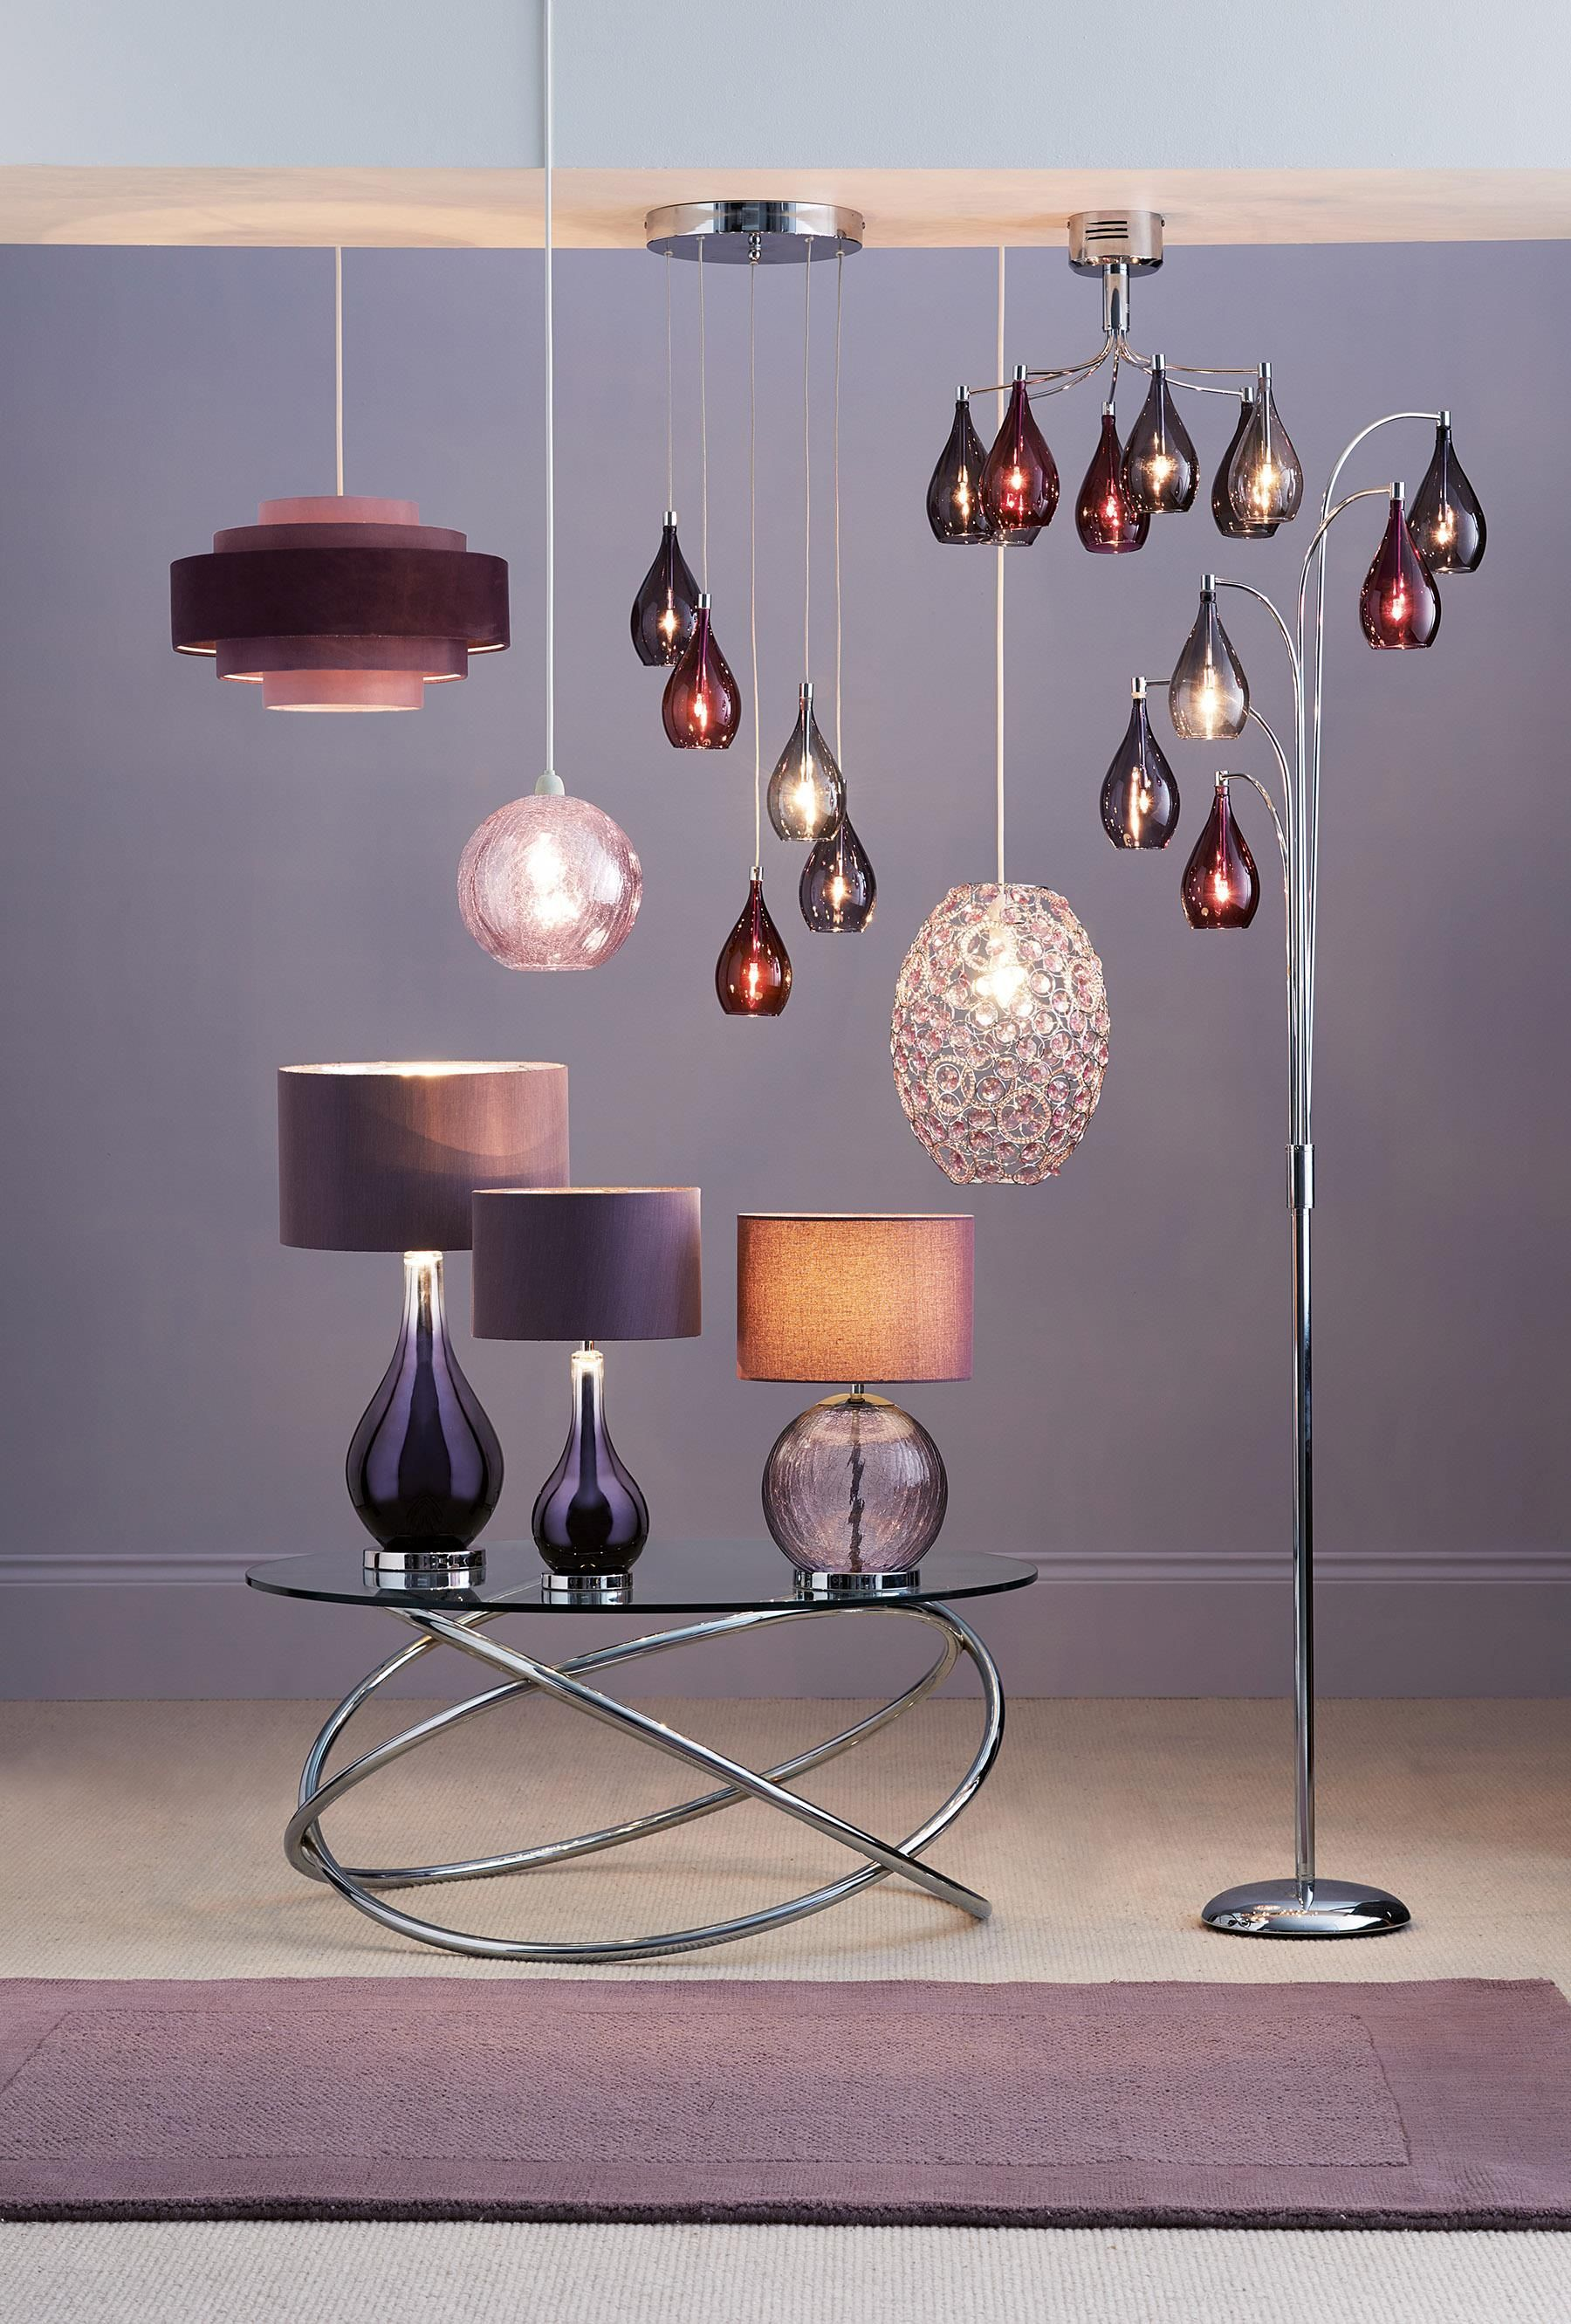 Buy Hanbury Plum Floor Lamp From The Next UK Online Shop Home - Bedroom light fittings uk